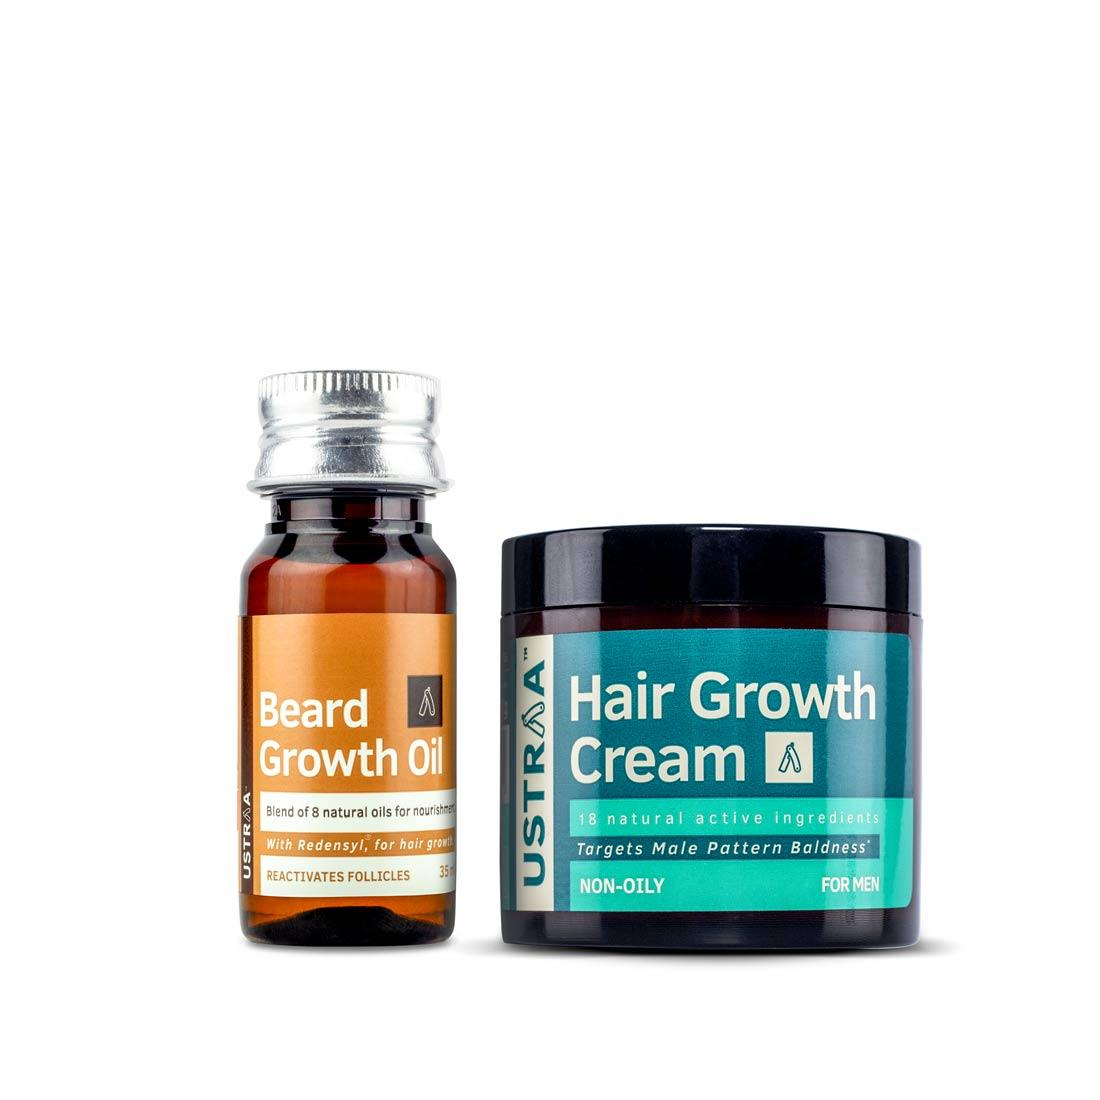 Ustraa Beard Growth Oil and Hair Growth Cream Combo for Men: With Redensyl, Saw Palmetto, Natural Oils & Onion Extract